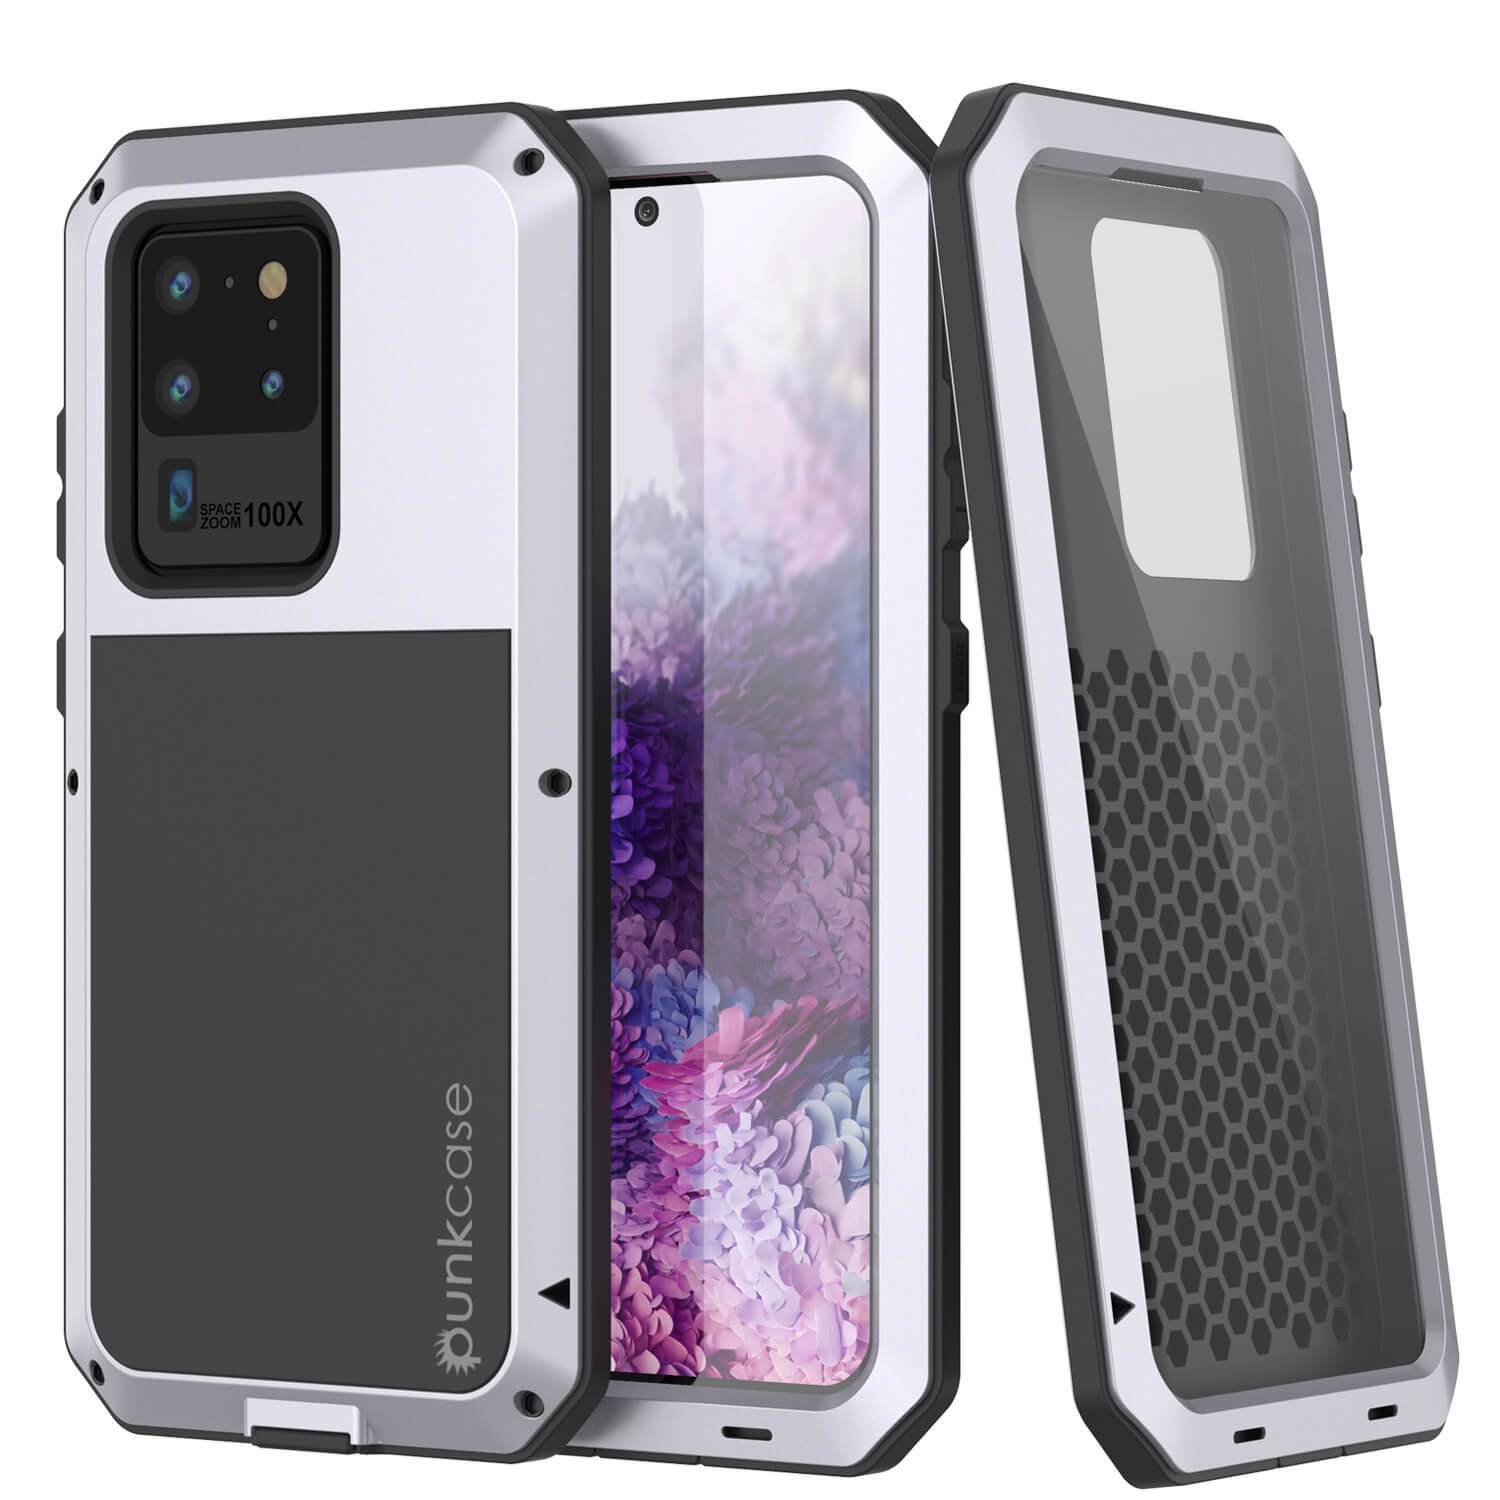 Galaxy S20 Ultra Metal Case, Heavy Duty Military Grade Rugged Armor Cover [White]